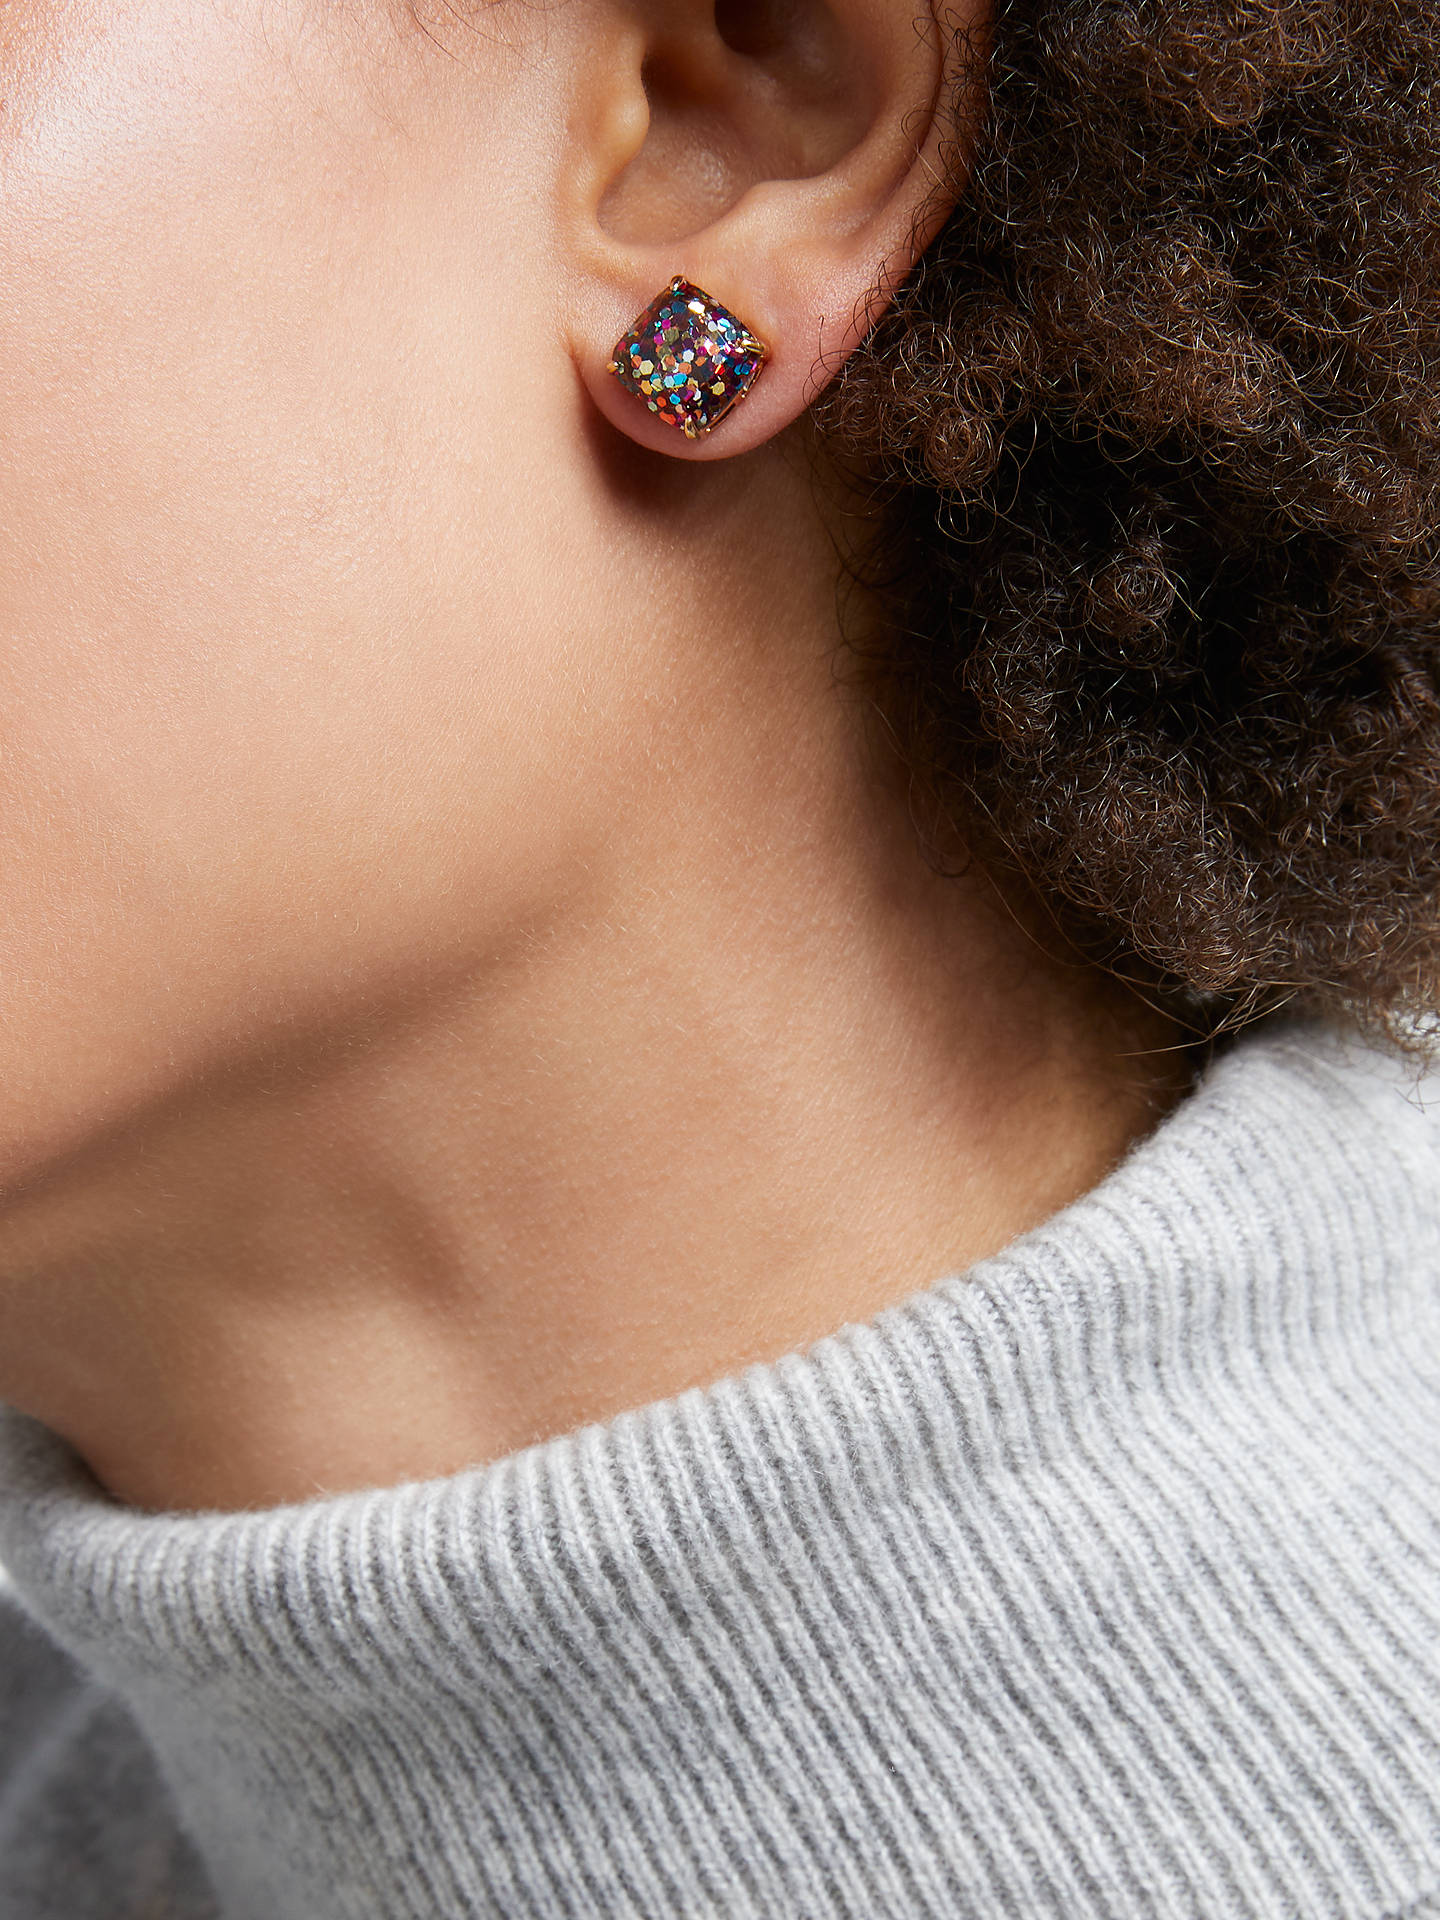 Buykate spade new york Square Glitter Stud Earrings, Multi Online at johnlewis.com